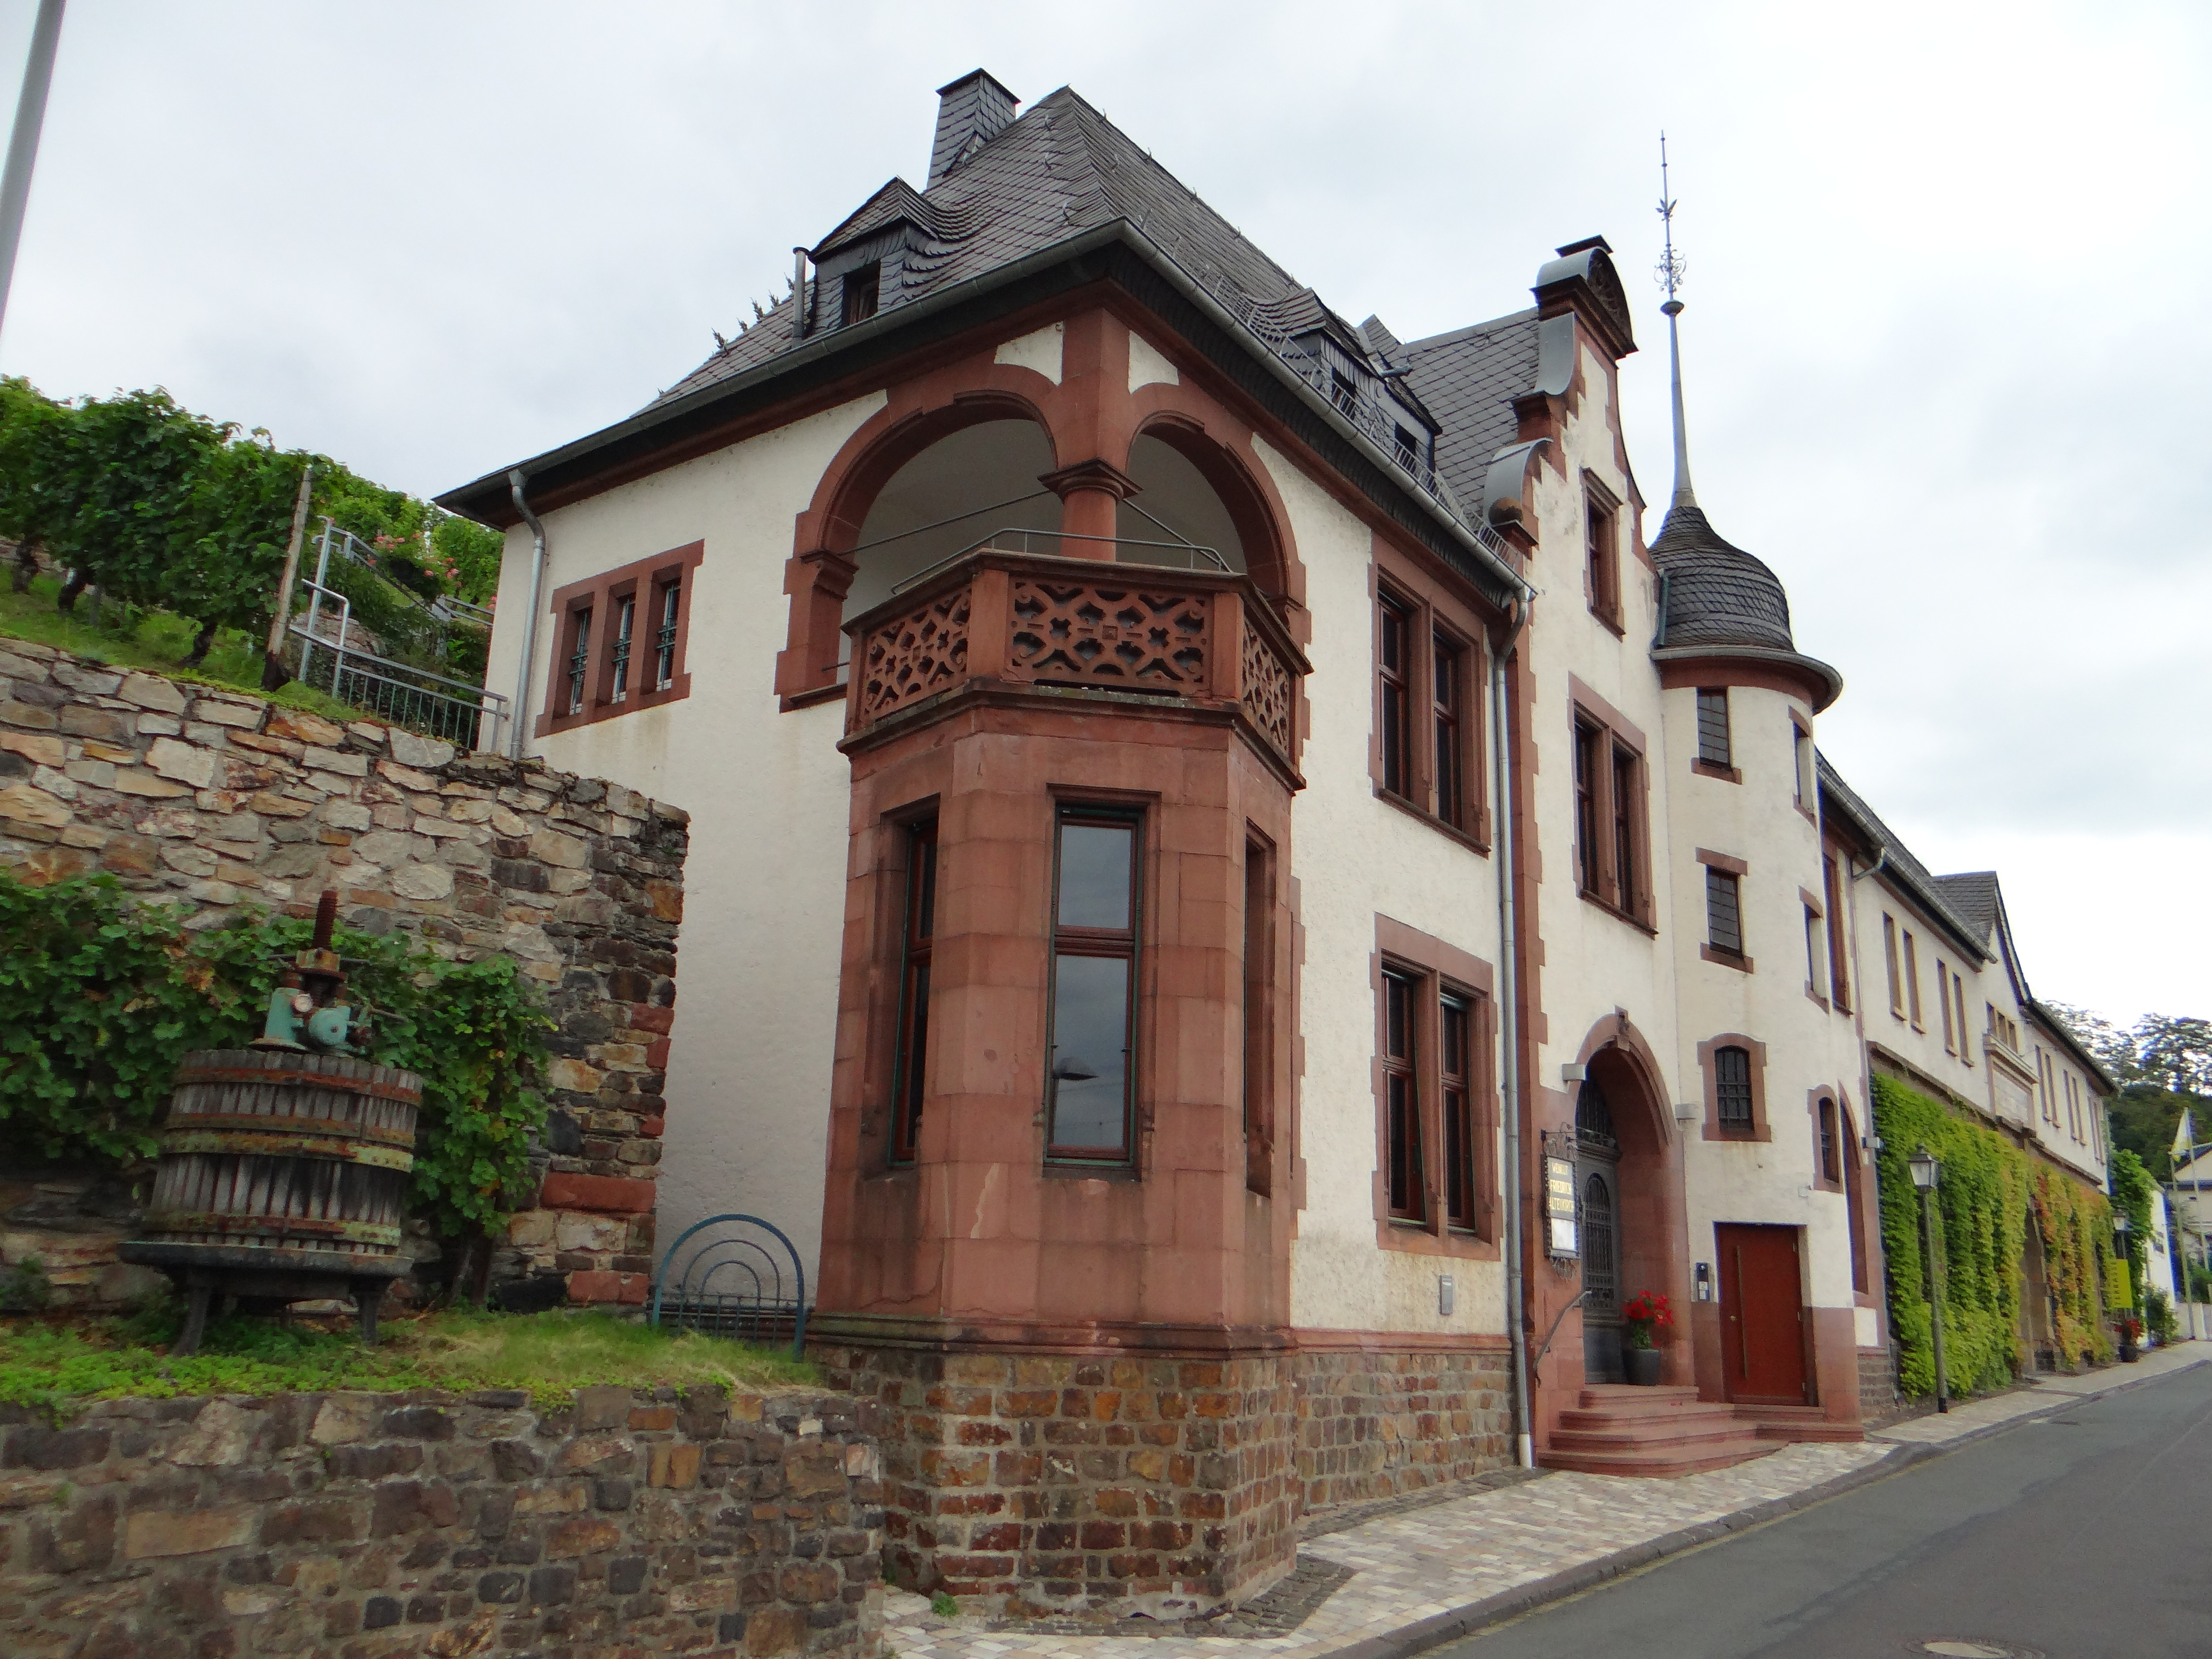 Weingut_altenkirch_1